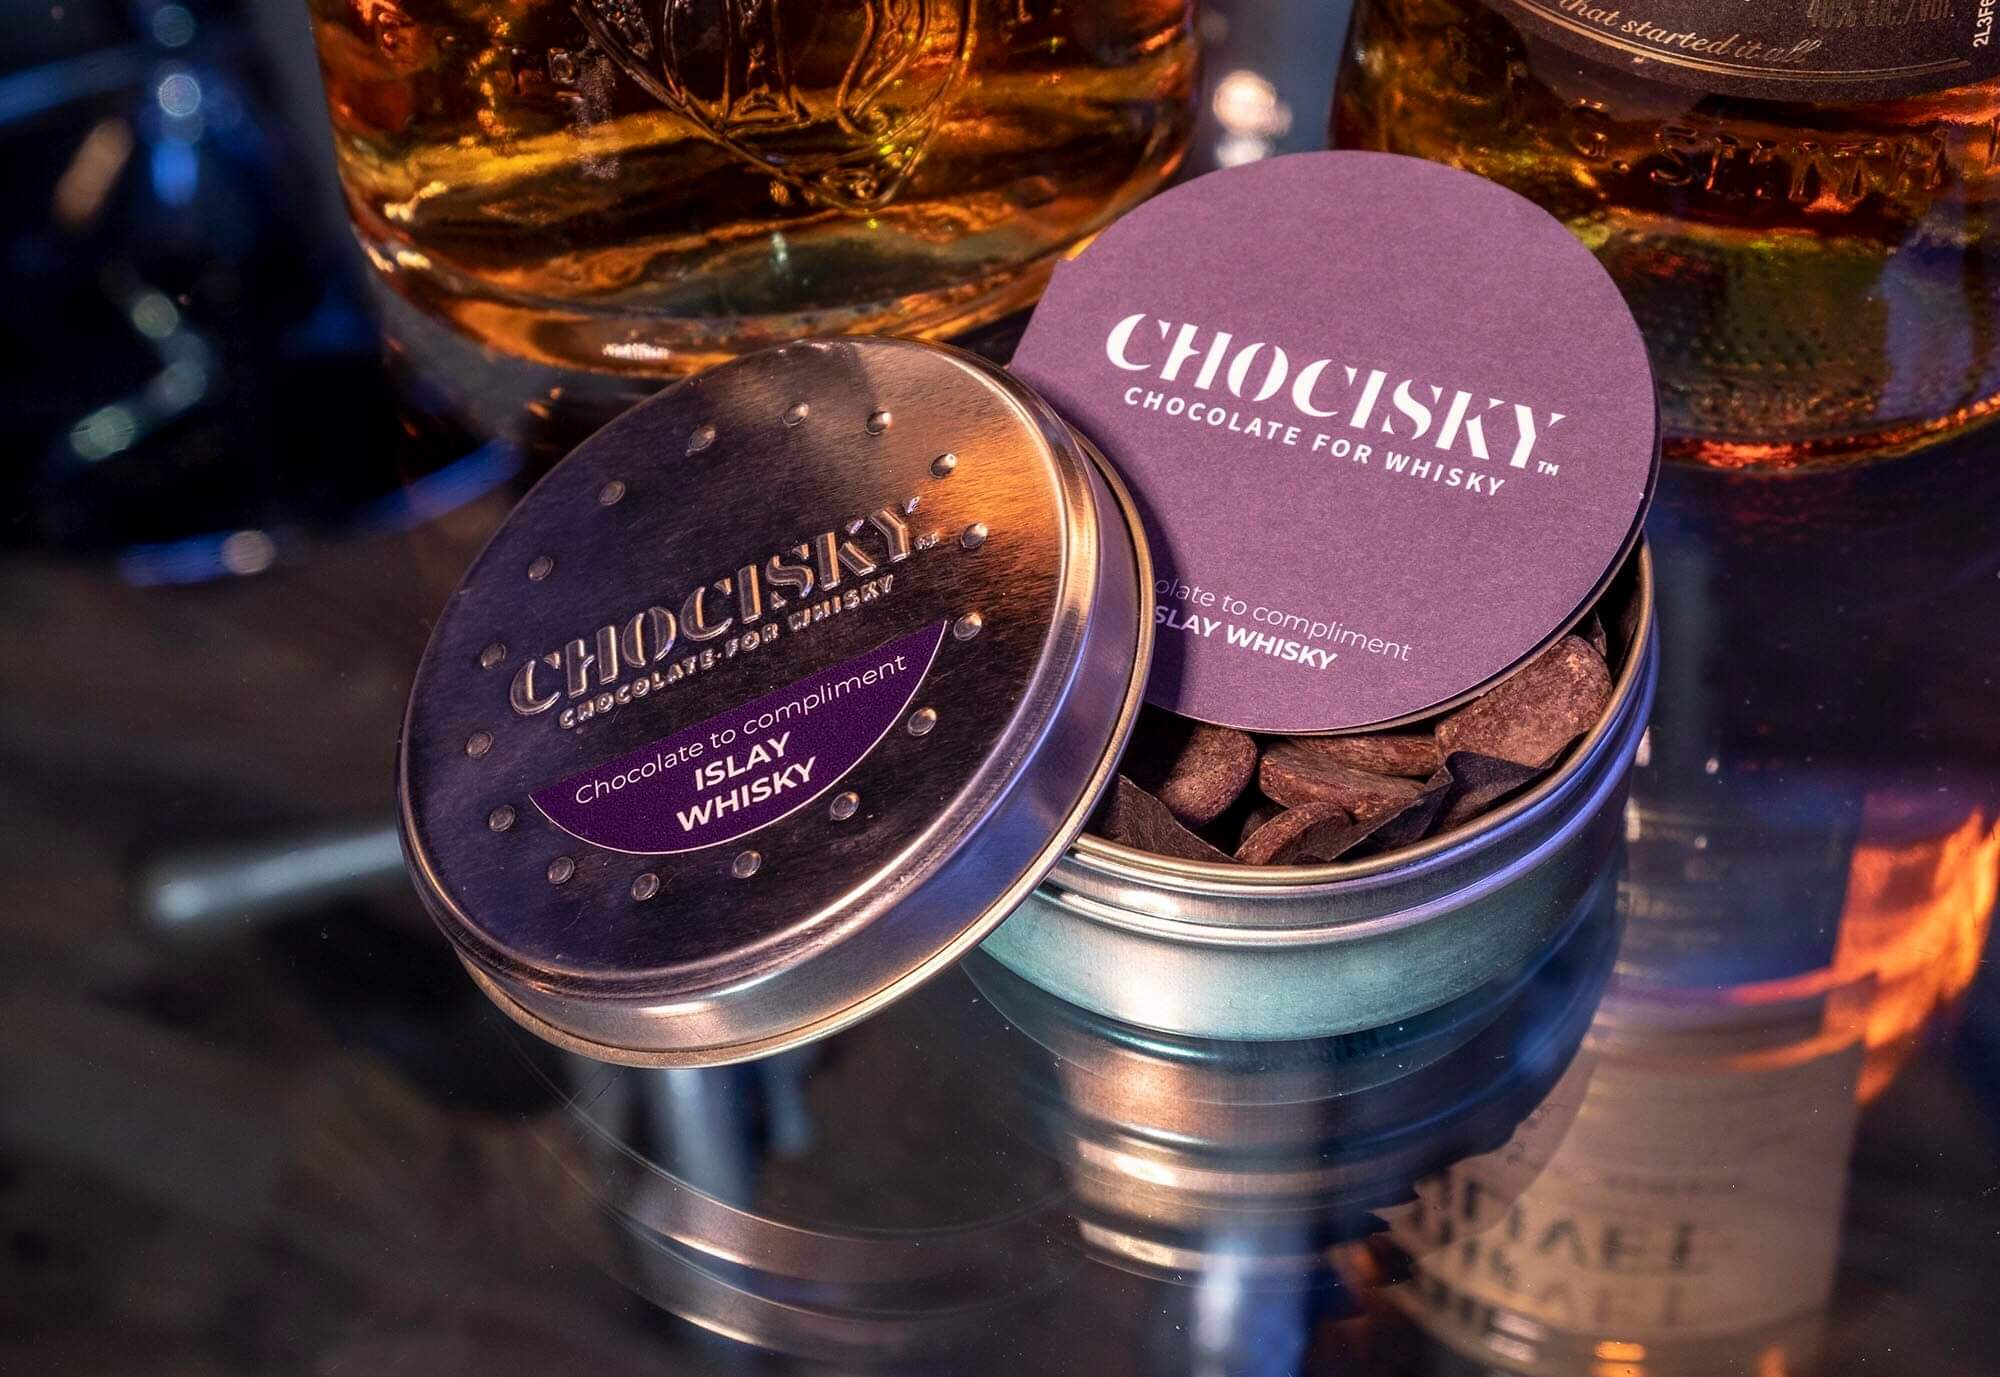 Chocisky - Islay